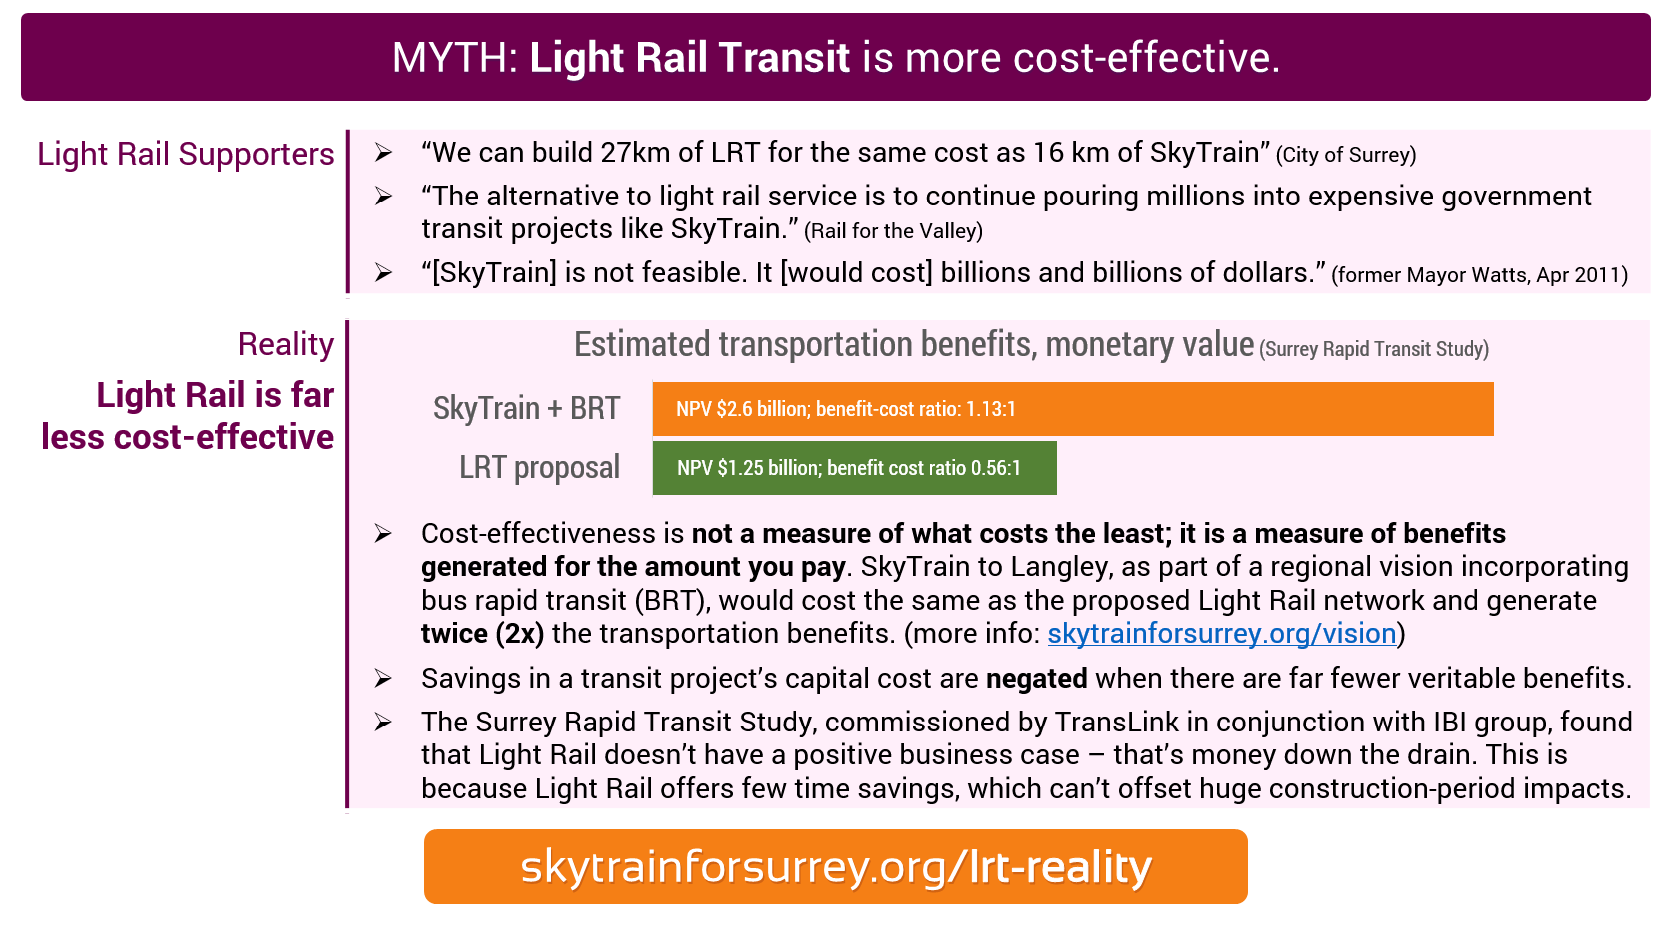 MYTH: Light Rail Transit is more cost-effective; REALITY: Light Rail is far less cost-effective.